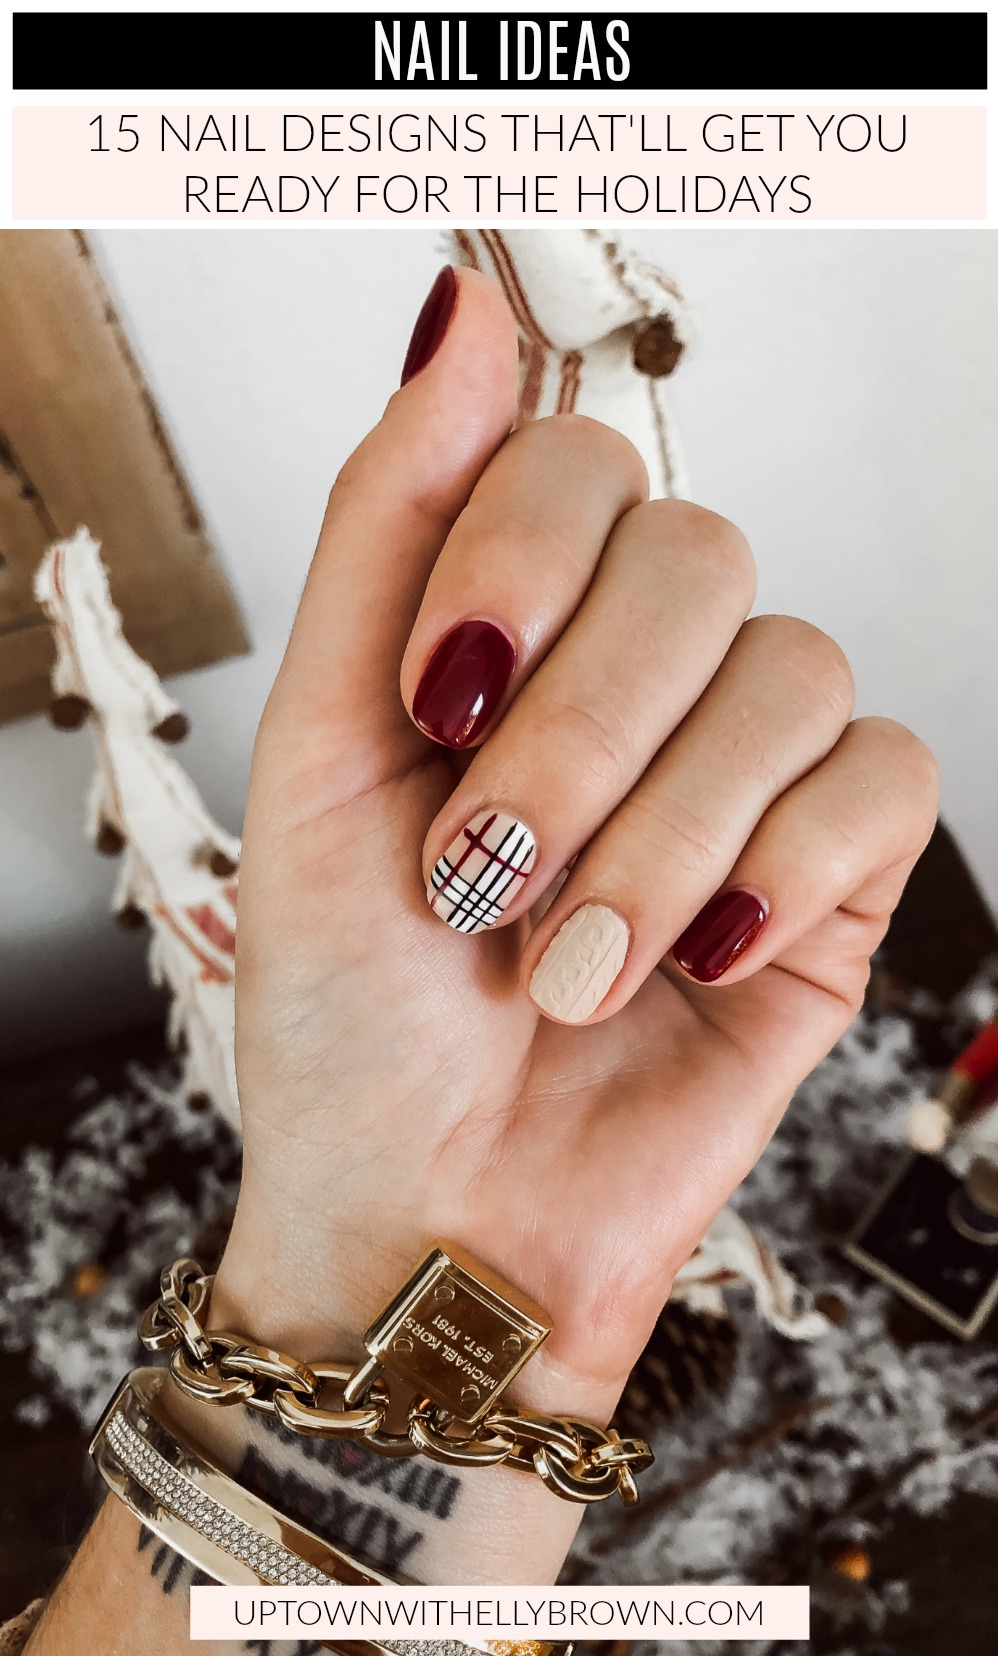 Houston beauty blogger Uptown with Elly Brown shares 15 Holiday Nails to try this holiday season. From glitter nails to plaid nails, she's sharing it all!